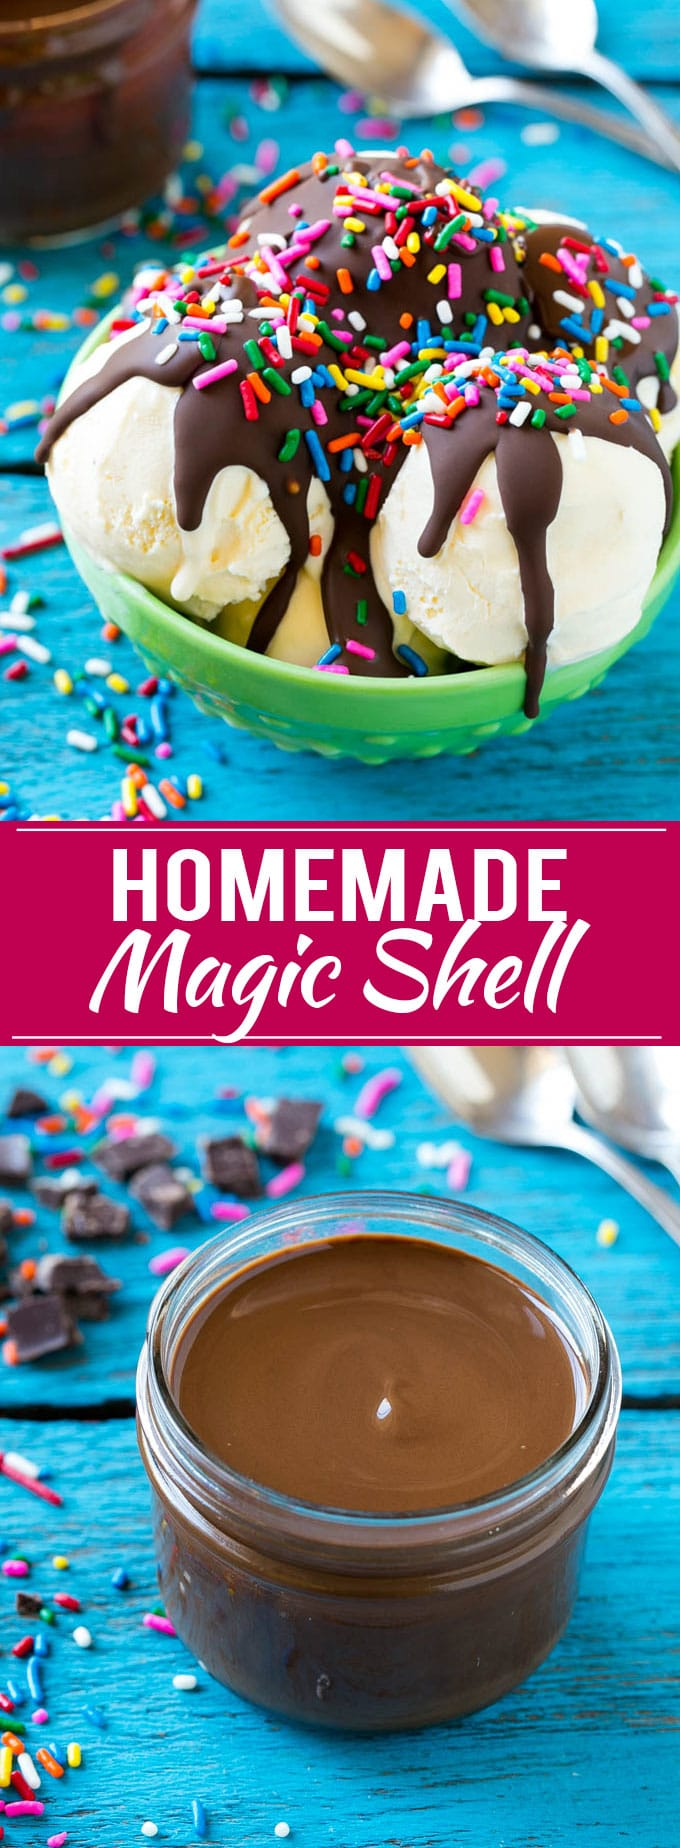 Homemade Magic Shell Recipe | Chocolate Ice Cream Topping | Chocolate Sauce | Hard Chocolate Coating #chocolate #icecream #dessert #dinneratthezoo